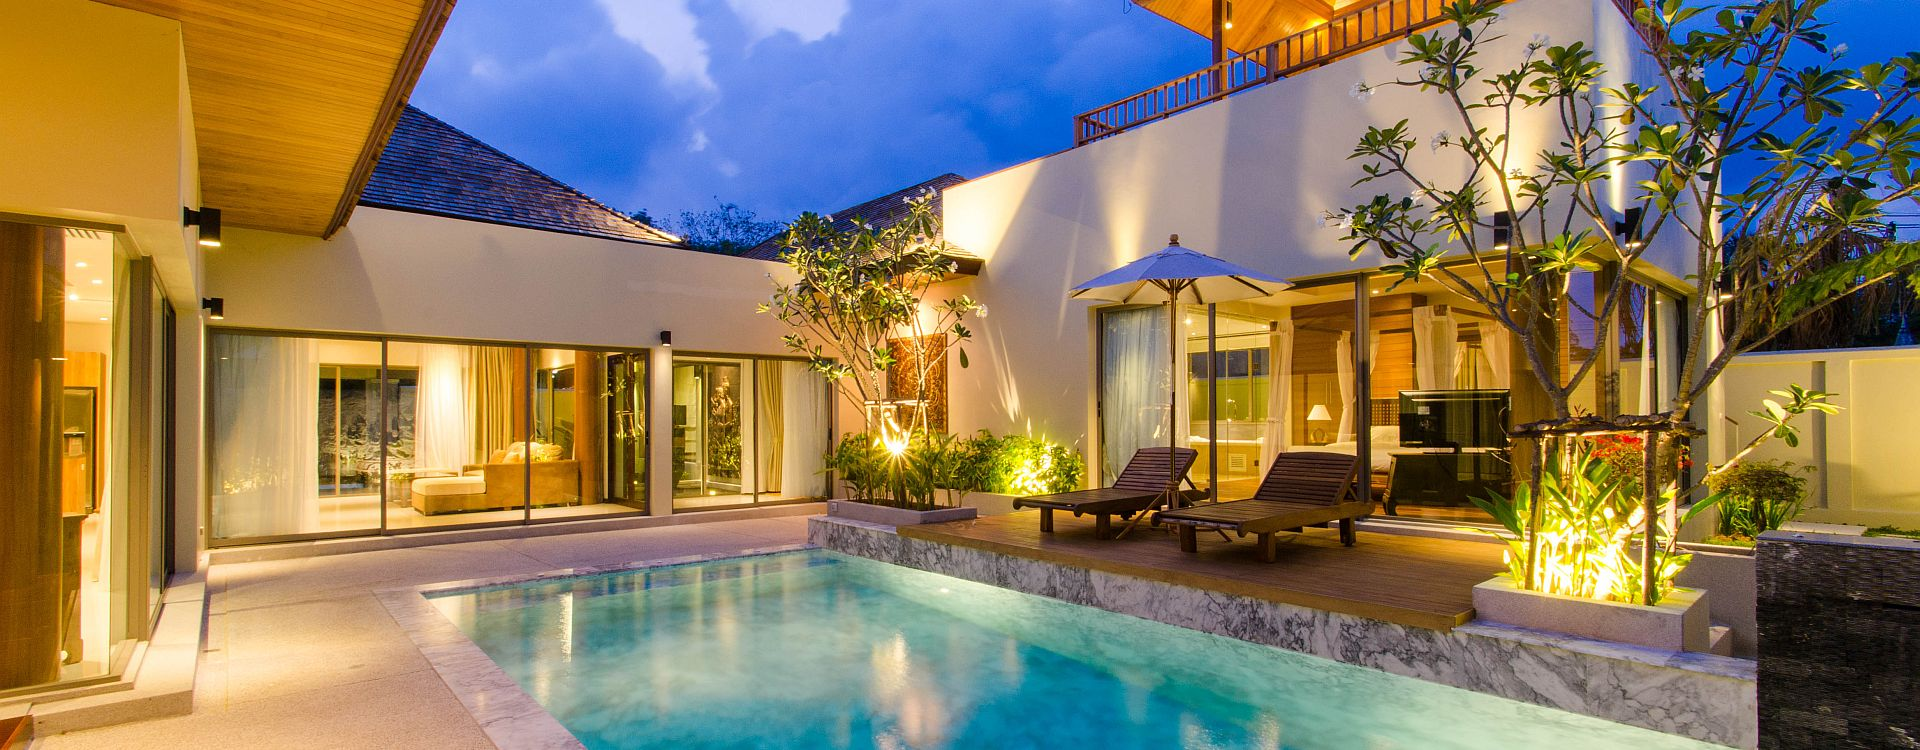 luxury villa phuket choosing luxury villa holidays delighting you all the way